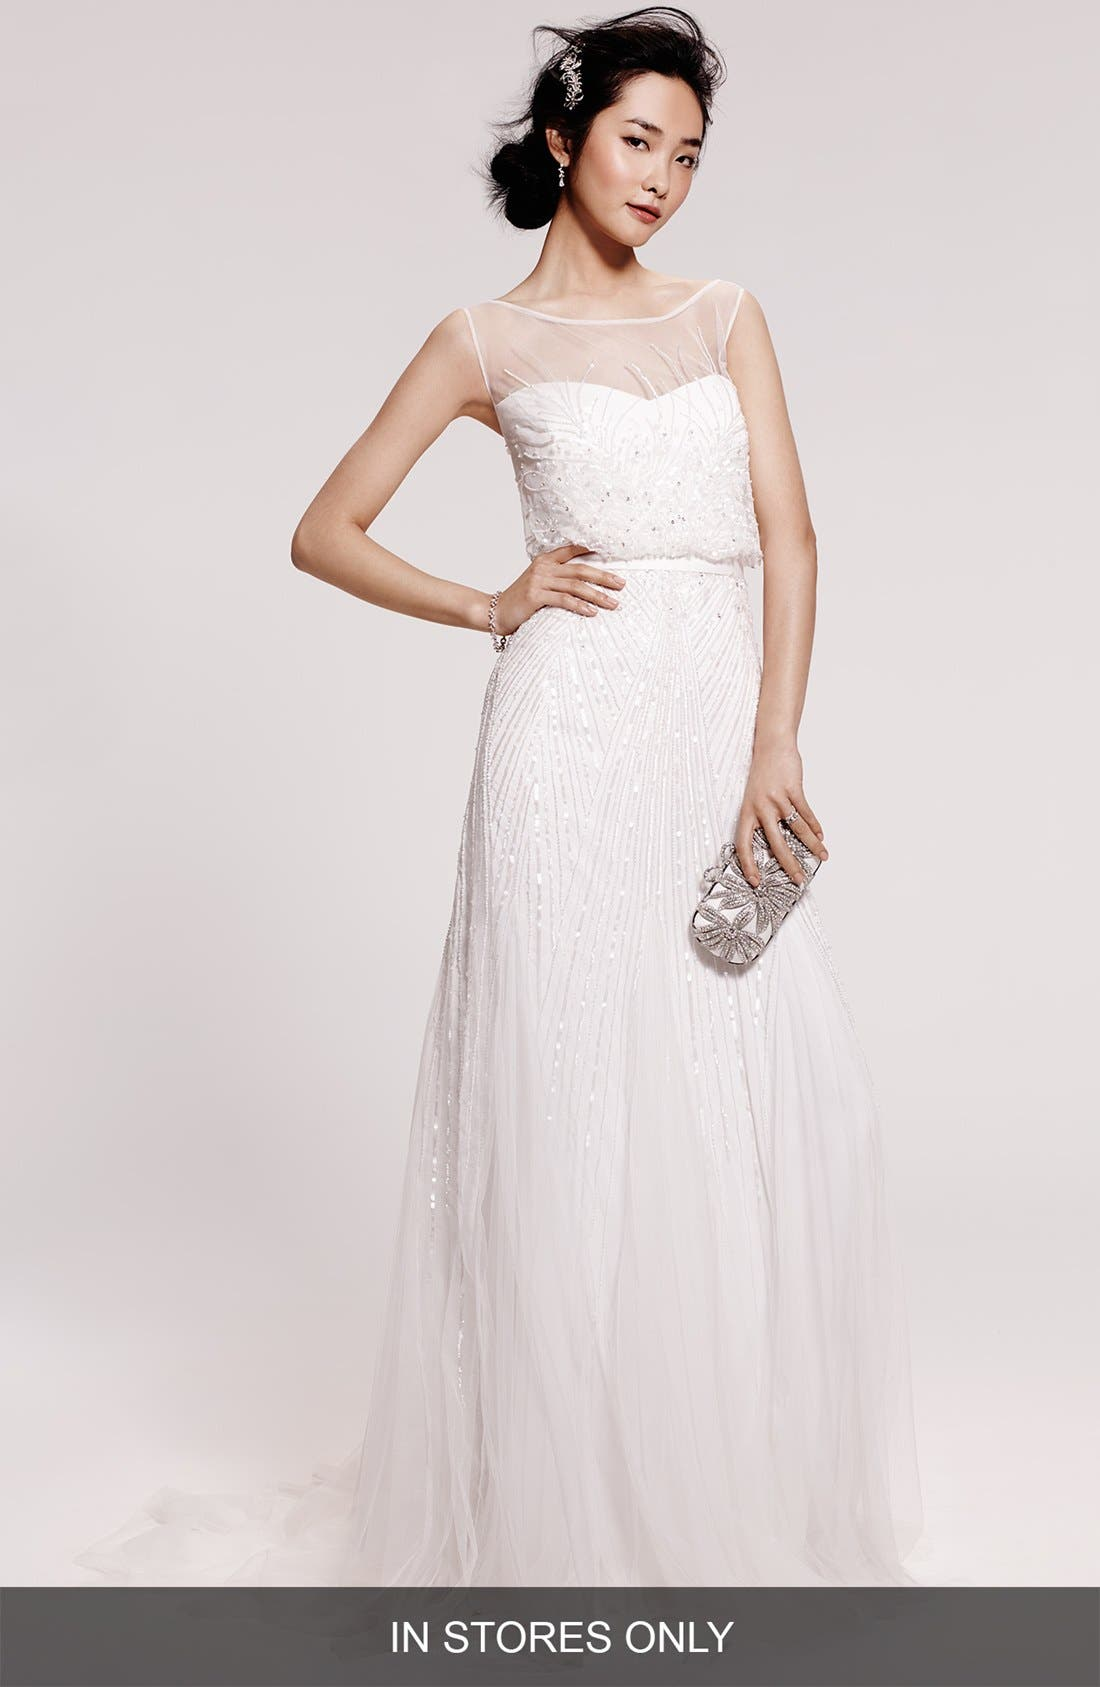 Alternate Image 1 Selected - Rosa Clara 'Ugo' Beaded Sheath Gown (In Stores Only)